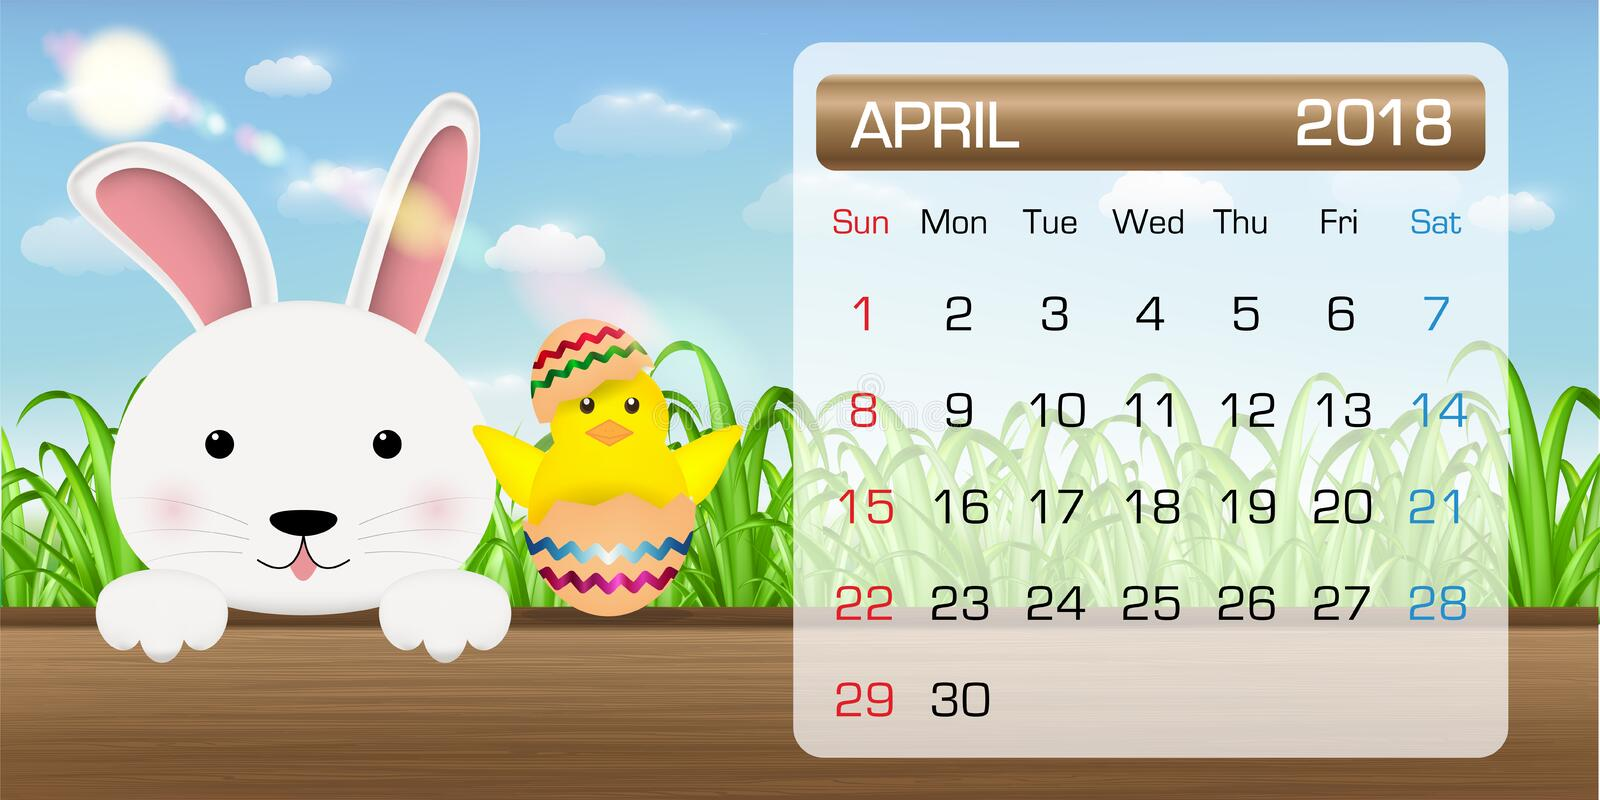 Xs Calendar April : Calendar of april month bunny chick easter stock